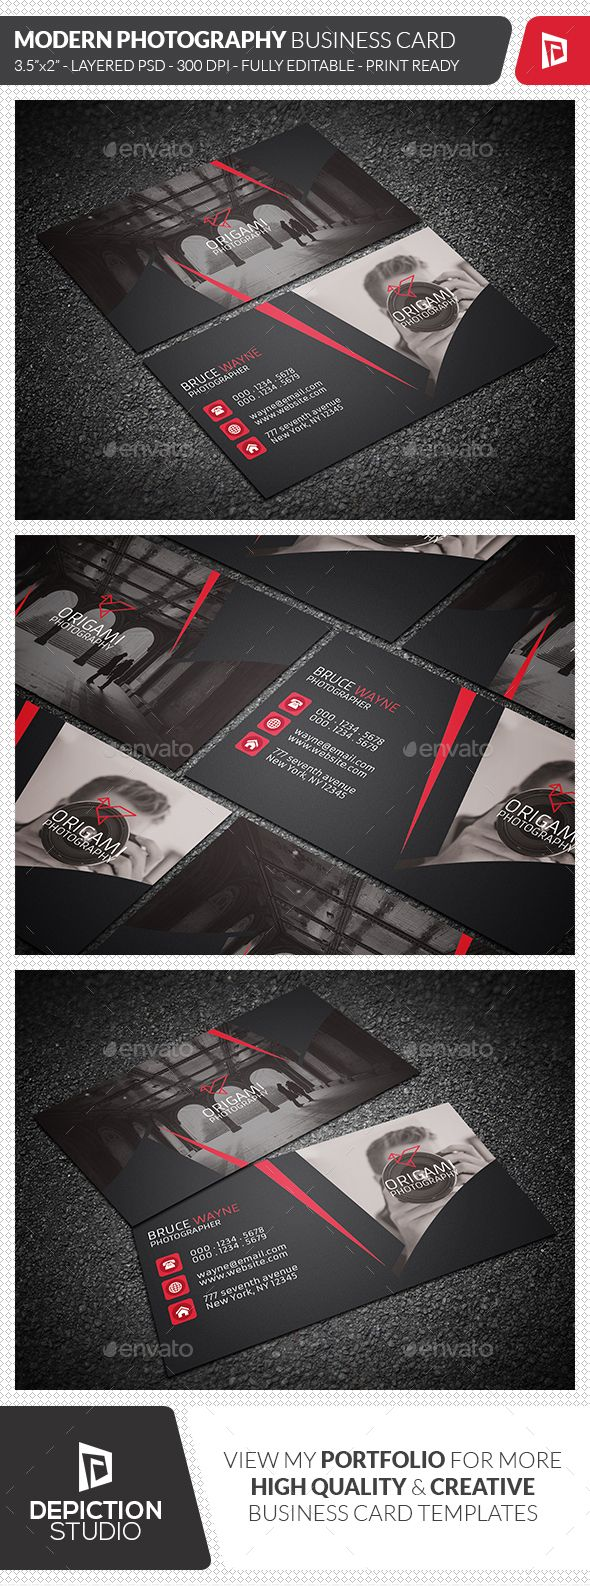 Best Joby Business Card Images On Pinterest Photography - 35 x2 business card template